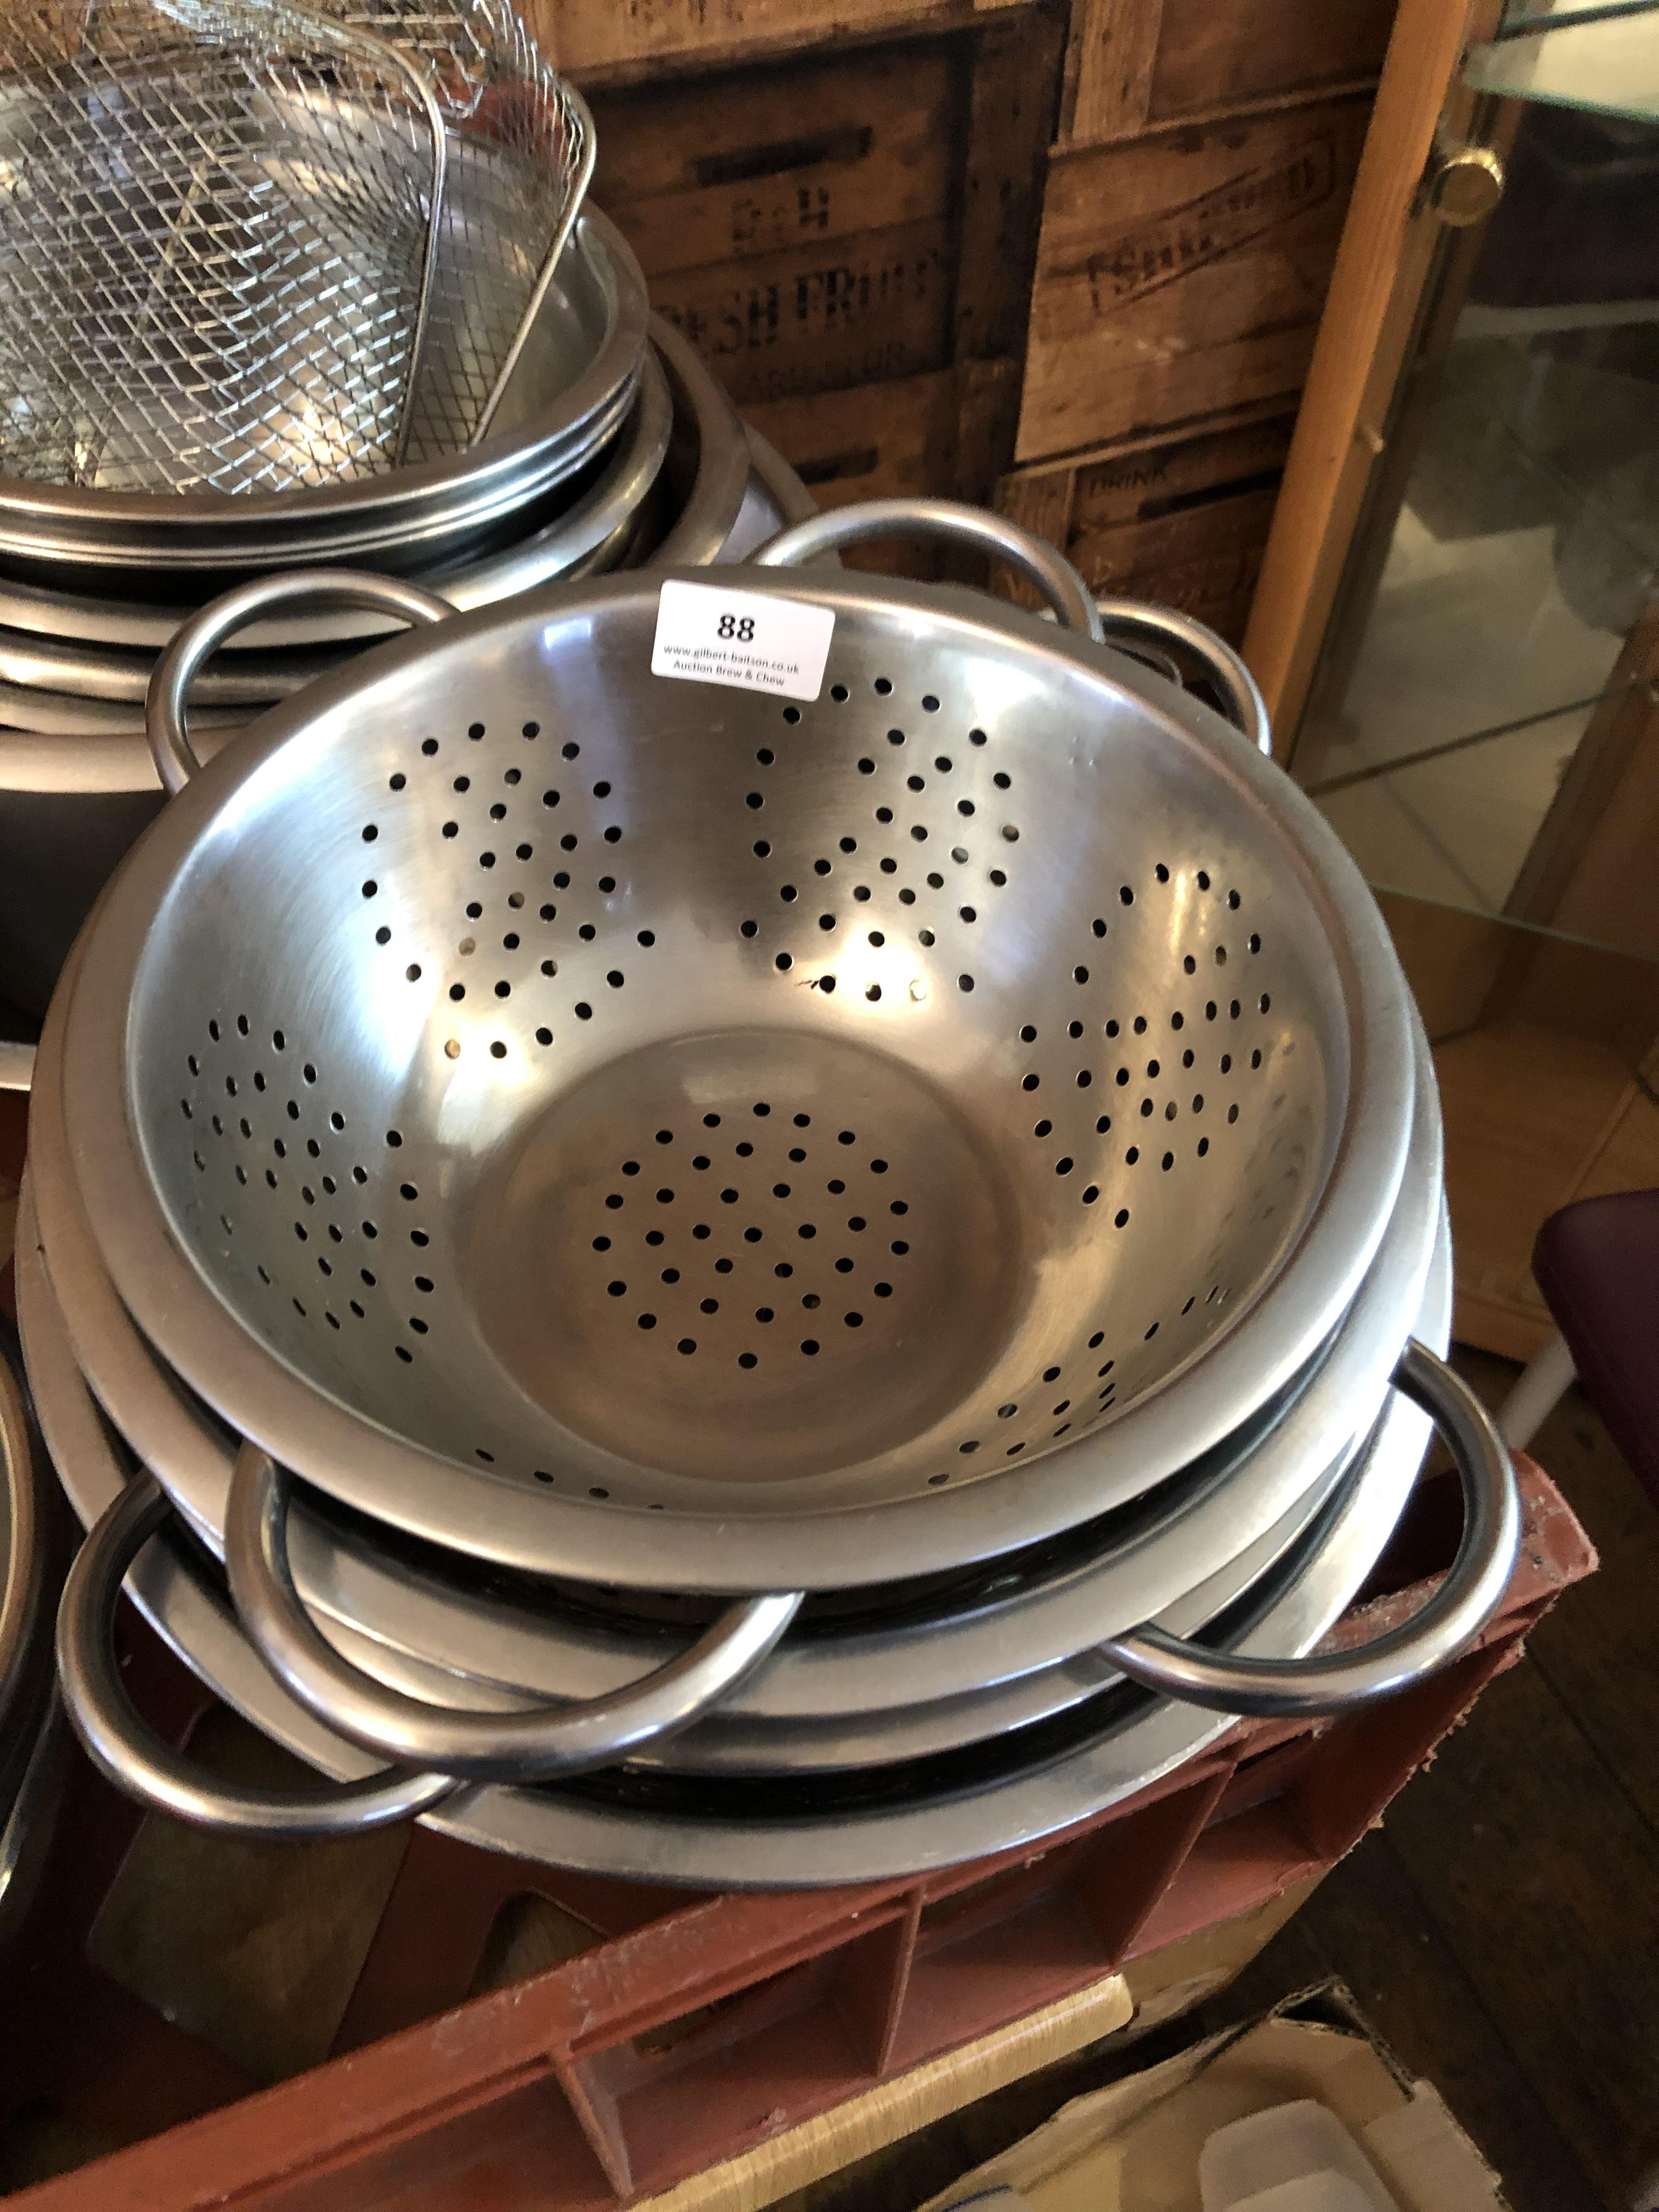 Lot 88 - Four Stainless Steel Colanders